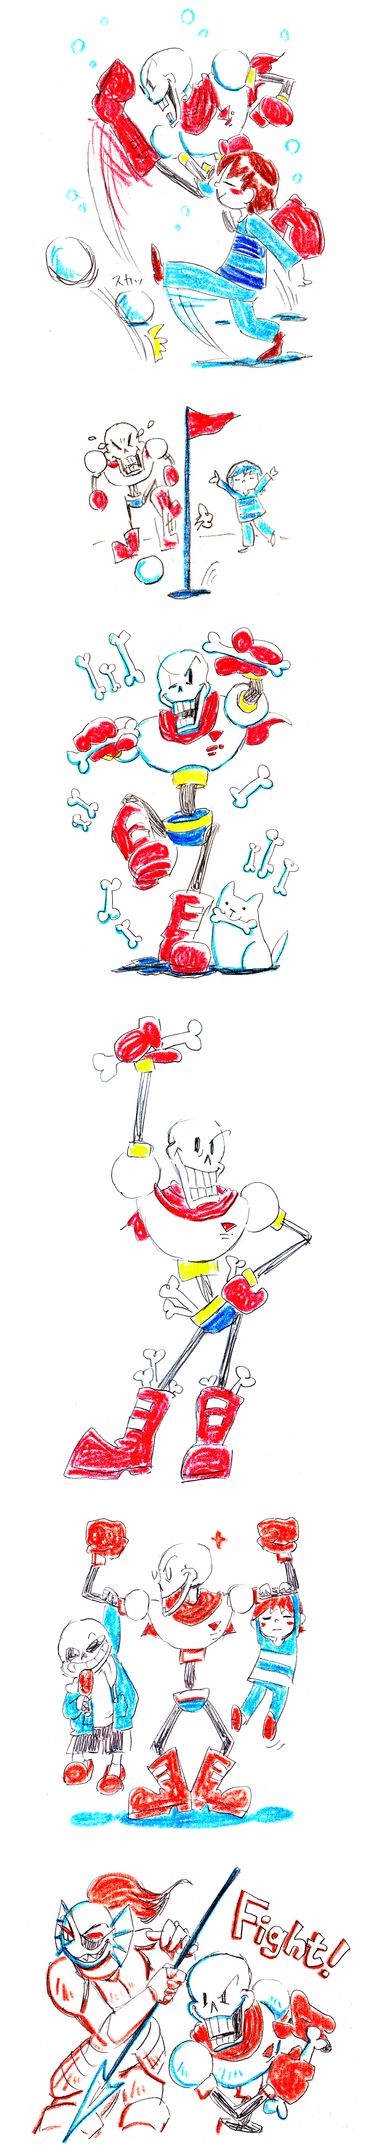 Papyrus and friends by aru0